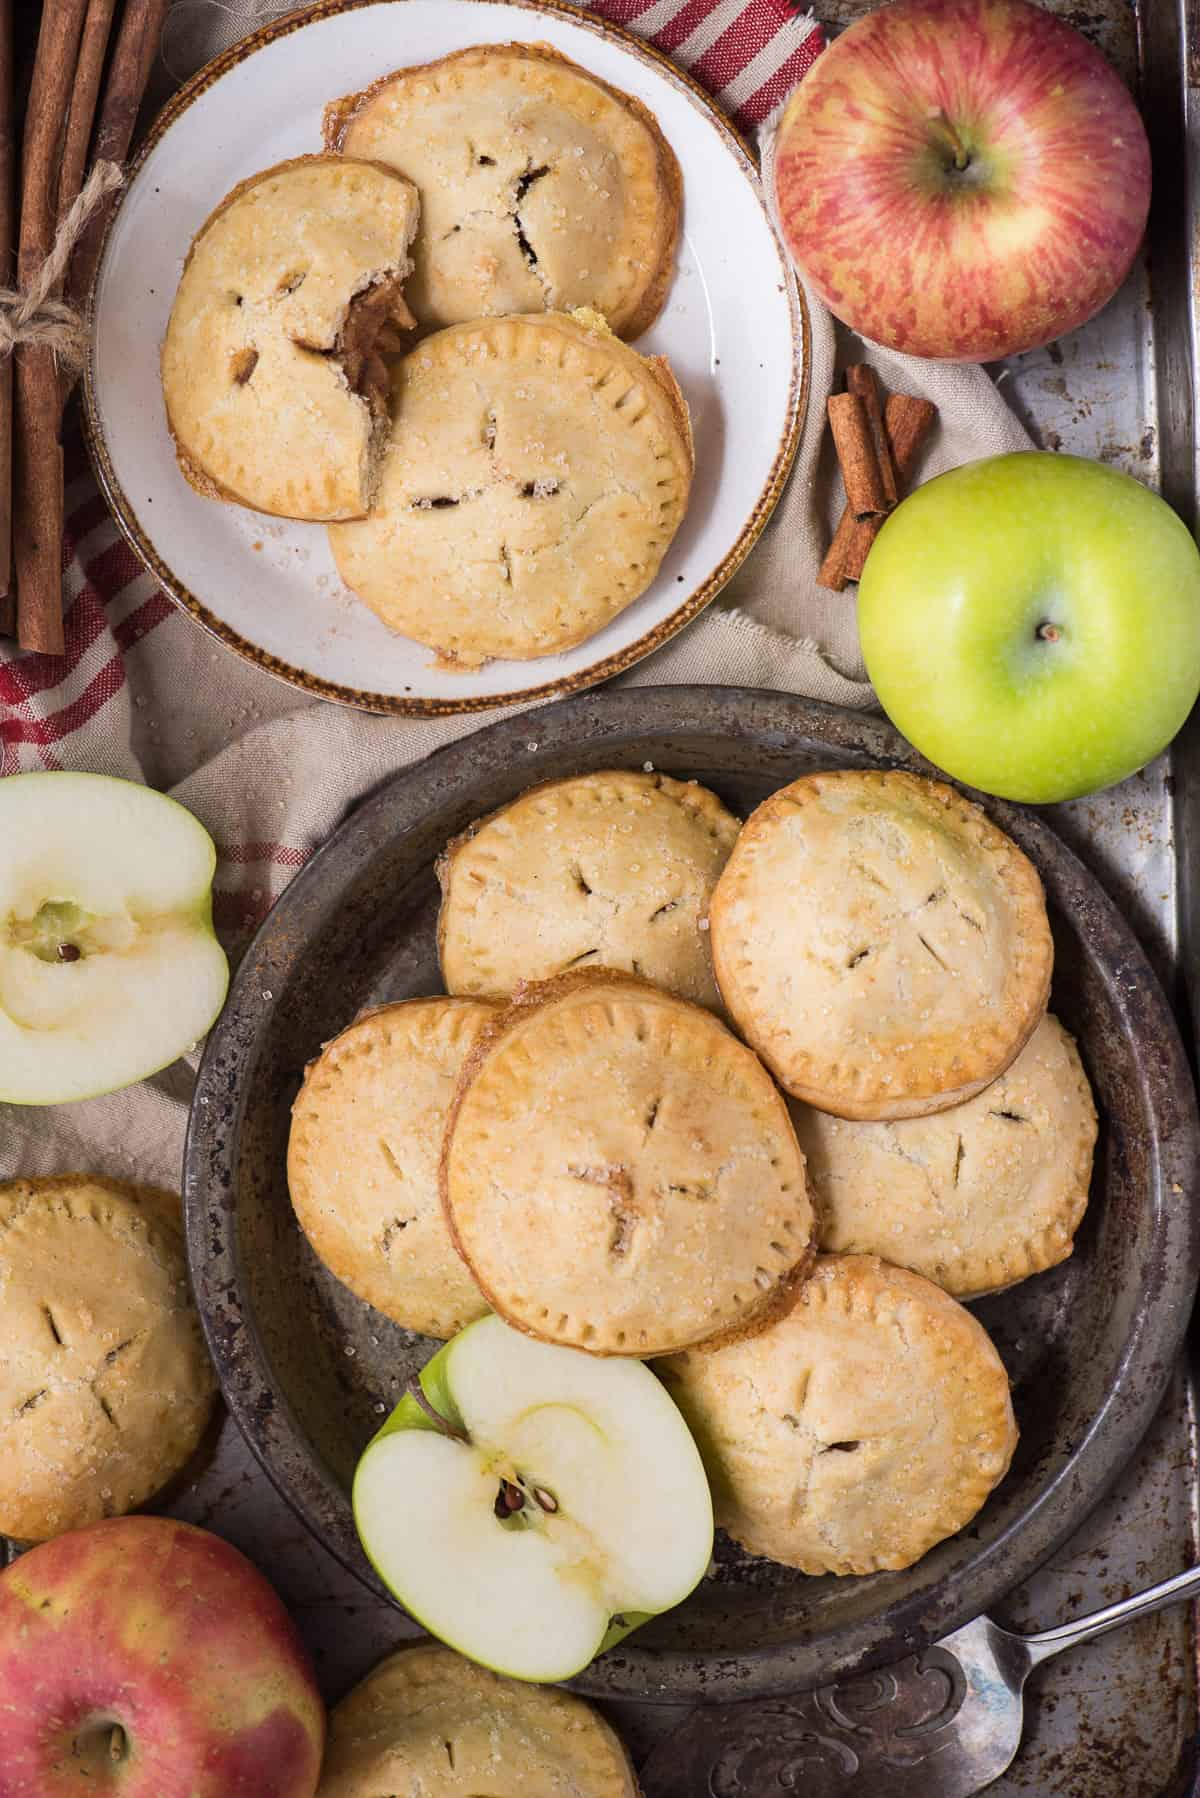 apple hand pies on plates with apples and tan colored napkin